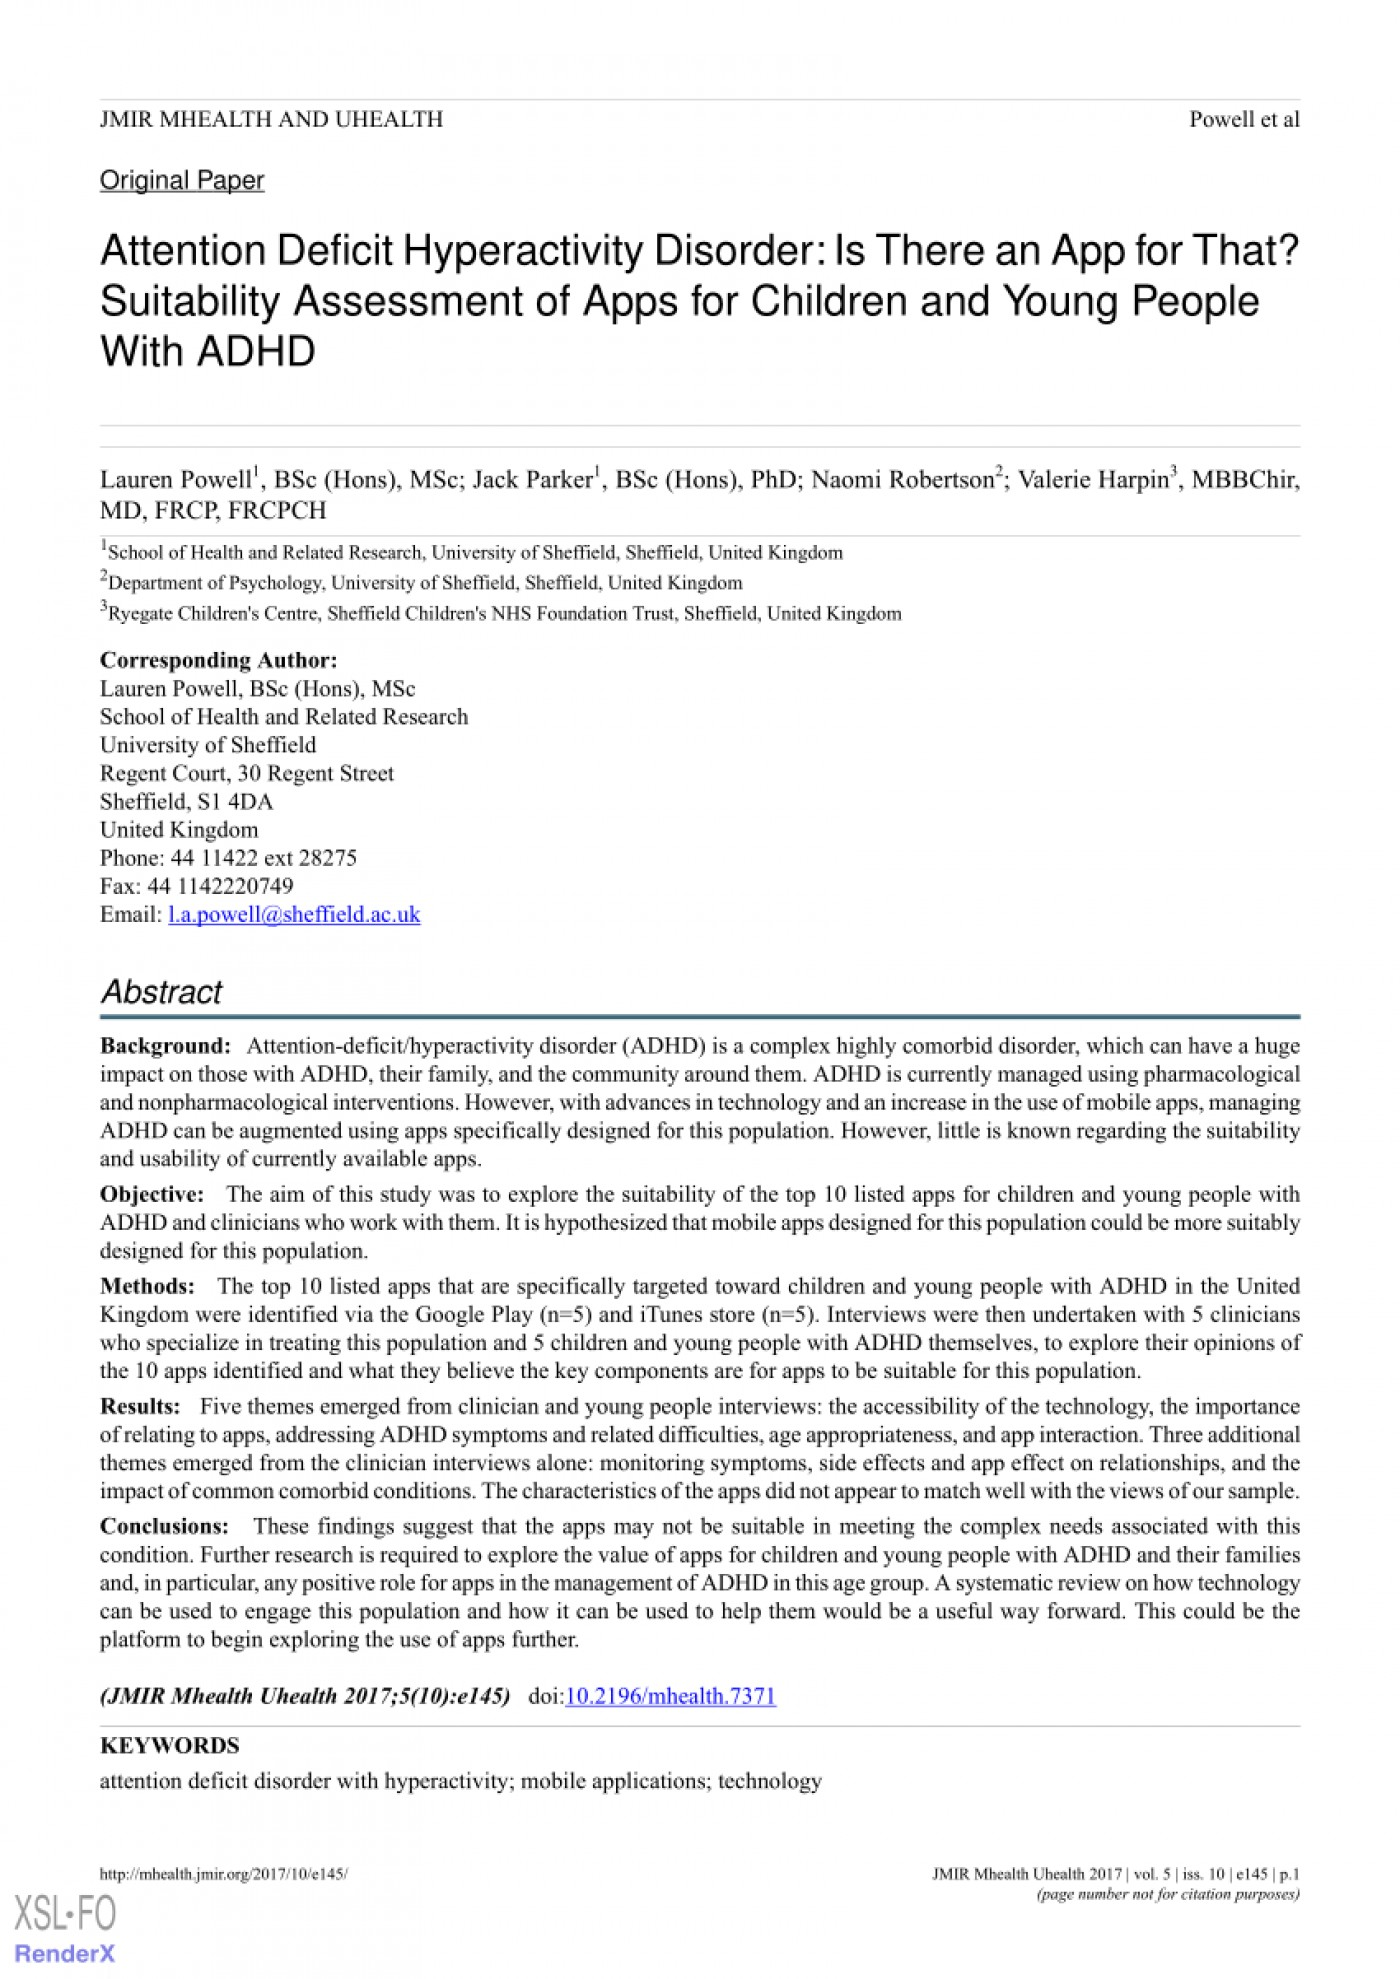 005 Adhd Research Paper Abstract Amazing 1400